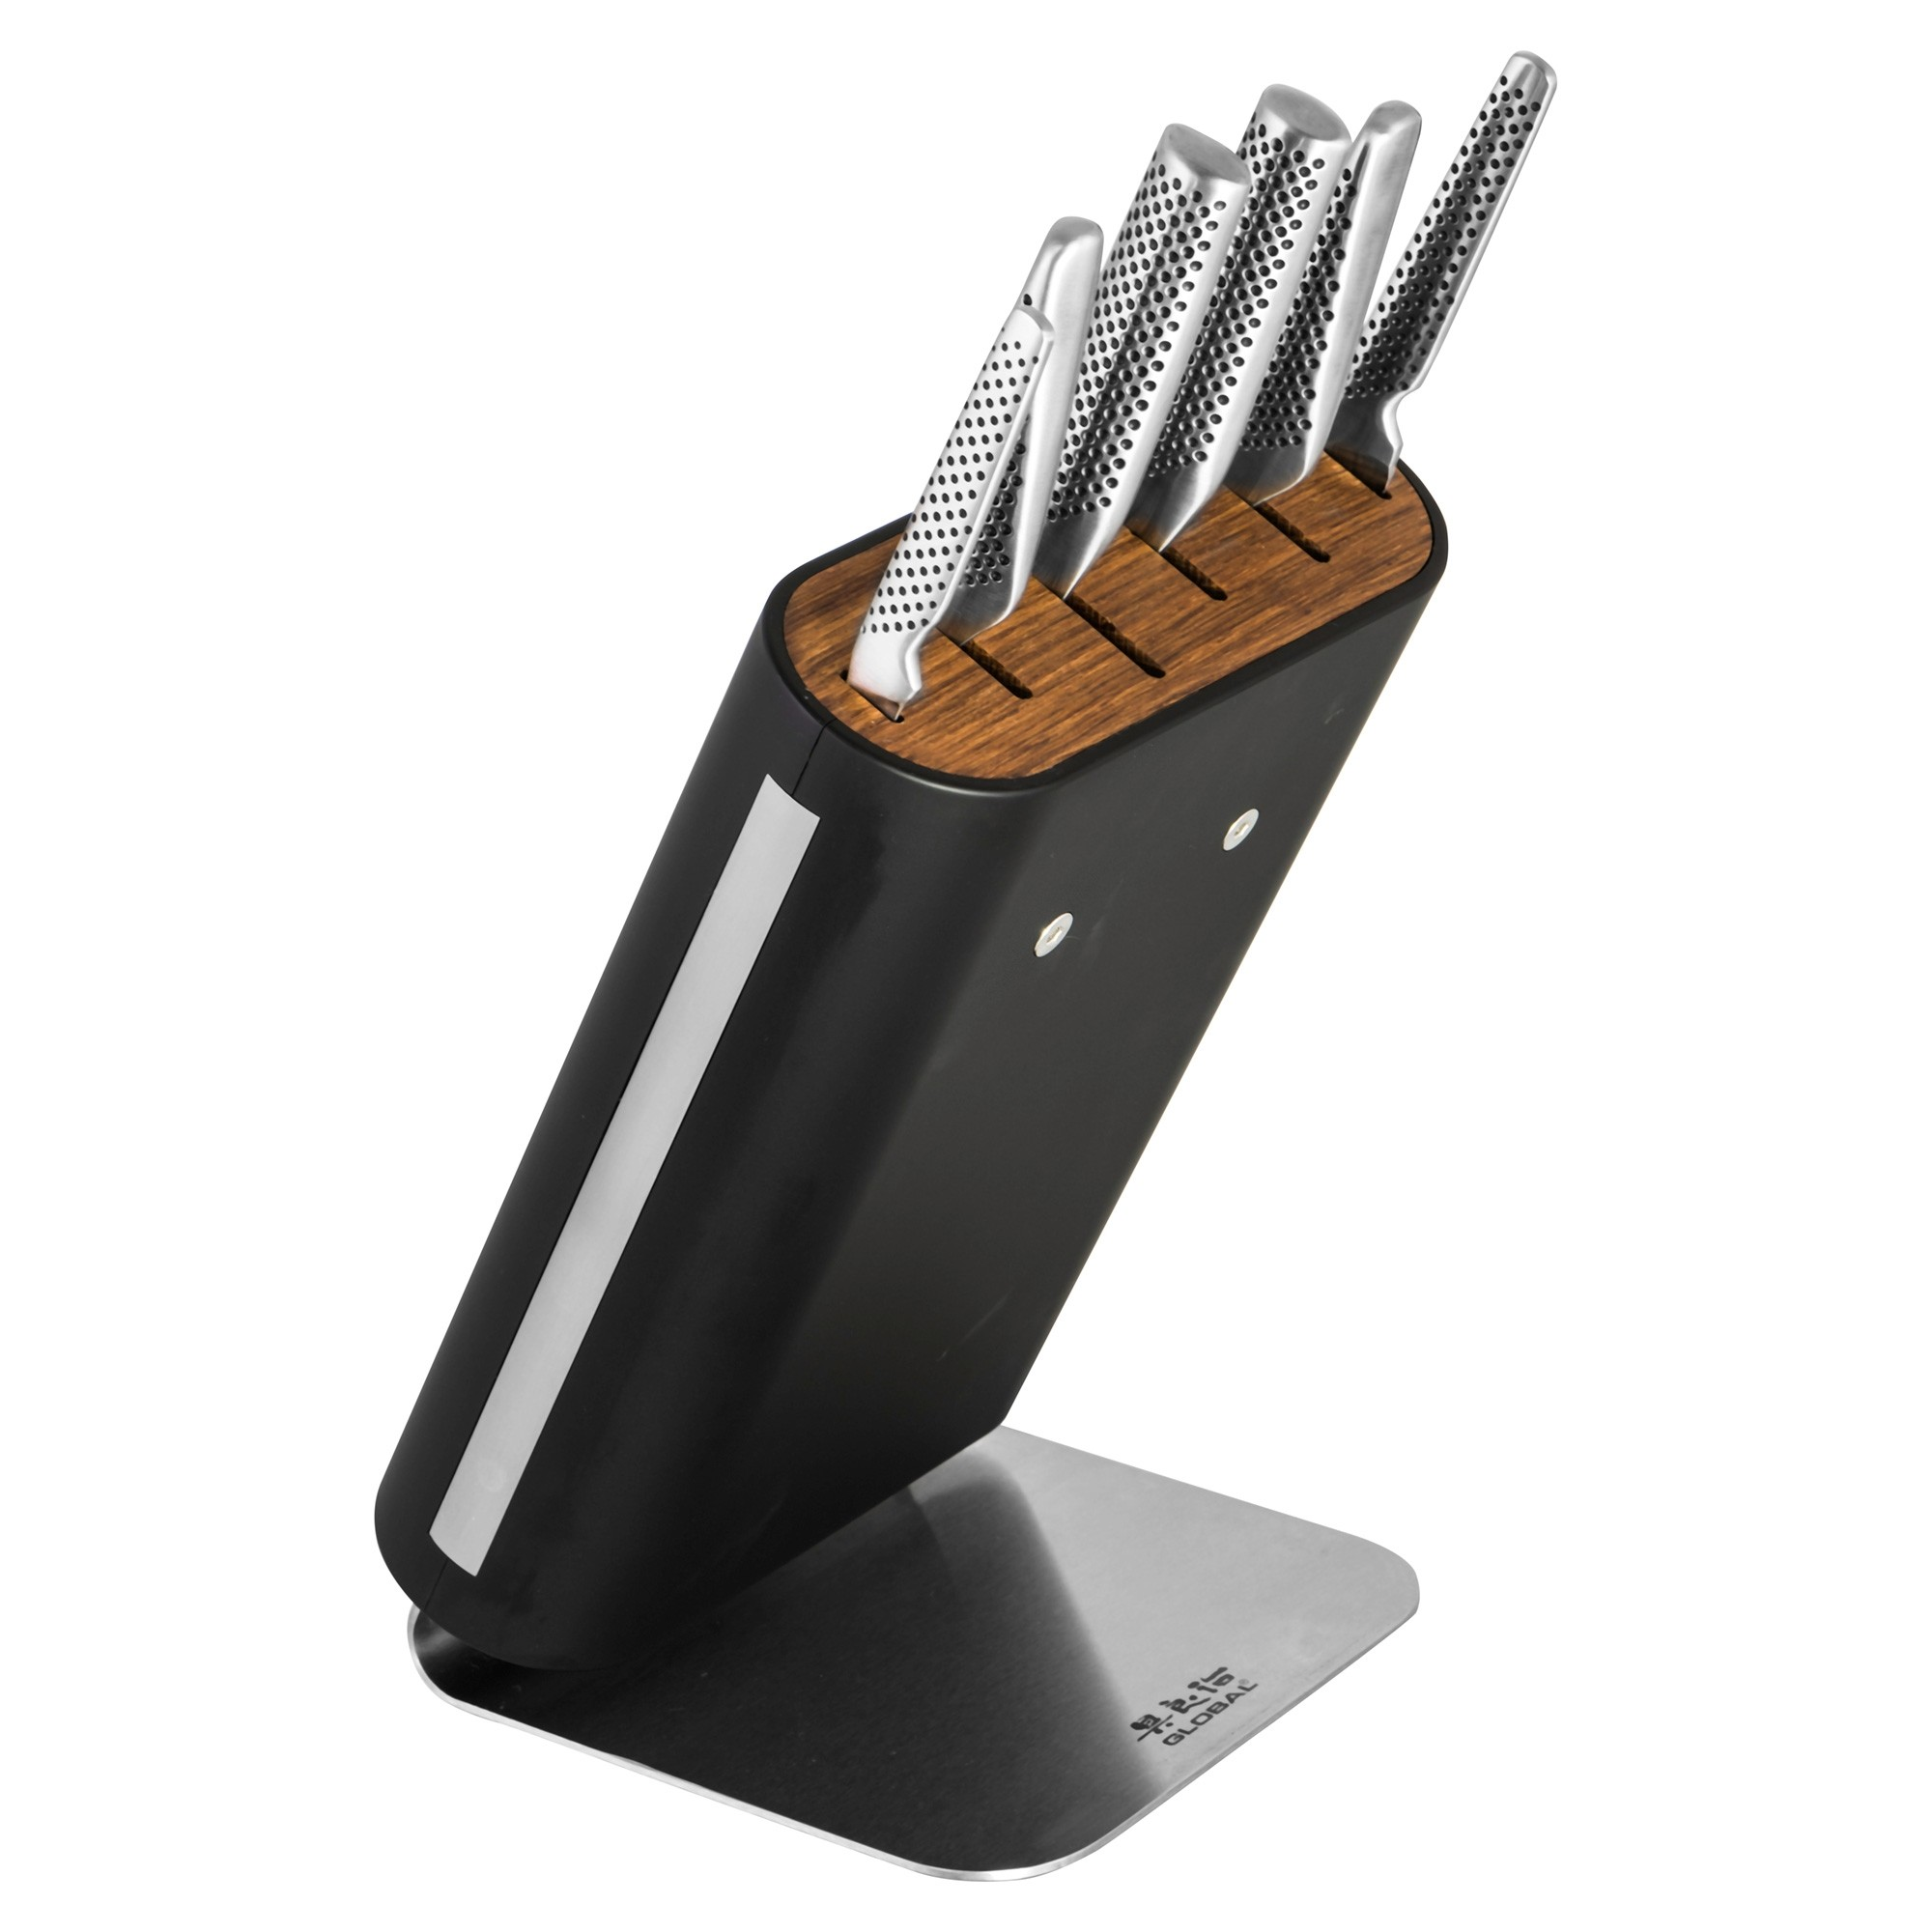 Global Hiro 7 Piece Knife Block Set  - Black